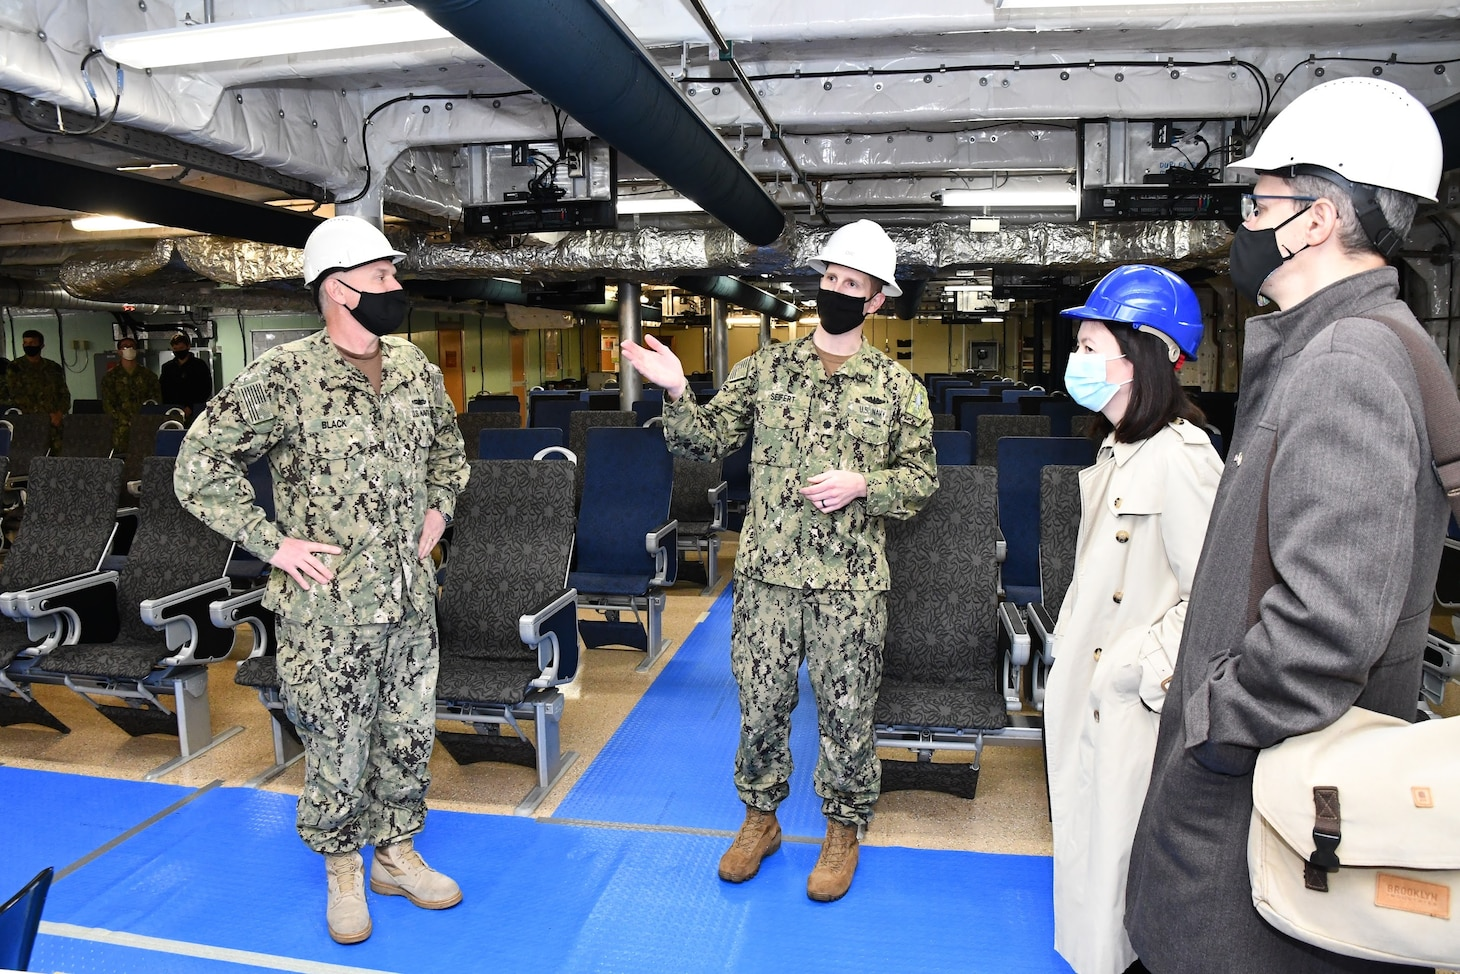 Cmdr. TJ Seifert, officer in charge of USNS Carson City, gives a tour to VADM Gene Black, Ms. Victoria Taylor, Charge d'Affaires, and Mr. Mark Schapiro, COMUSNAVEUR Political Advisor, during their visit to Rijeka, Croatia.